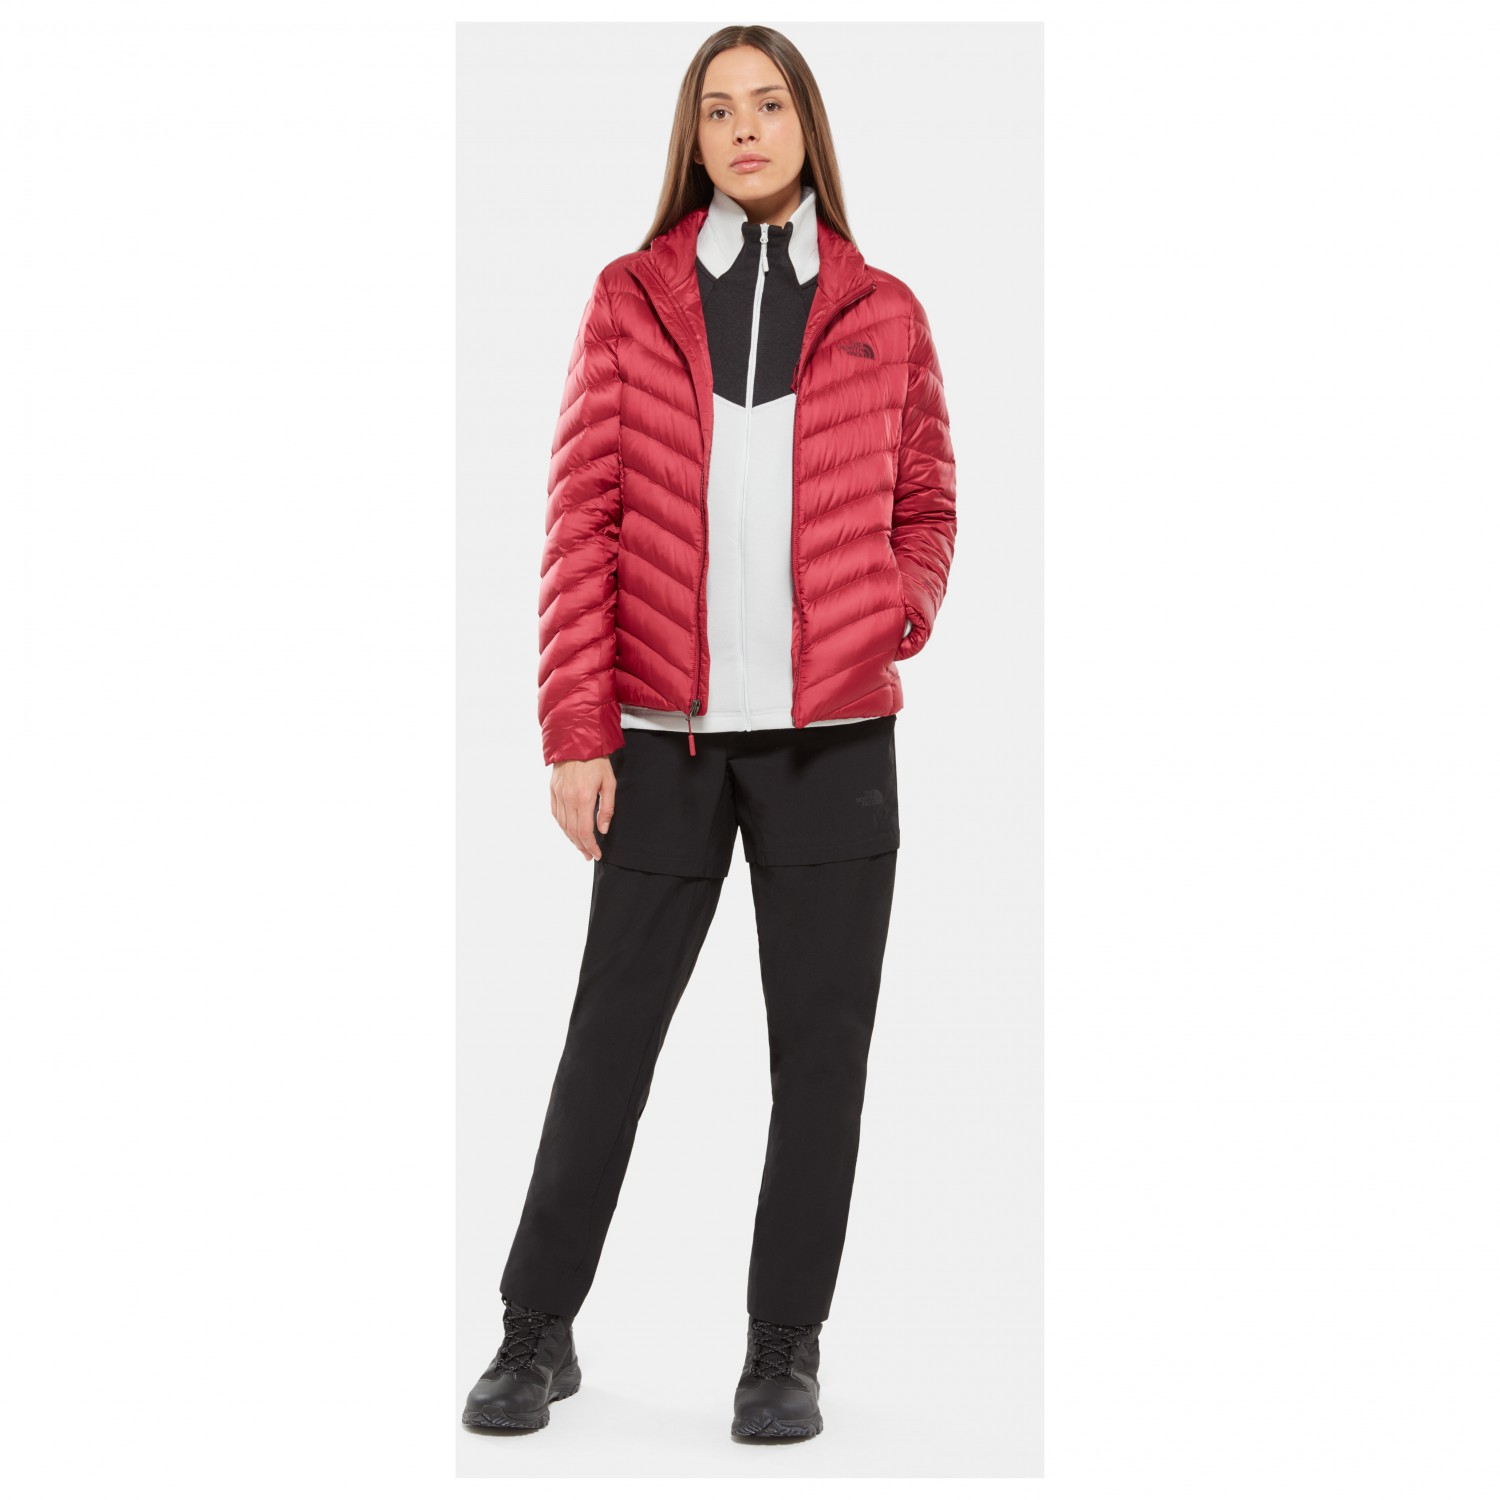 buy popular 8034f dad65 The North Face Trevail Jacket 700 - Daunenjacke Damen online ...